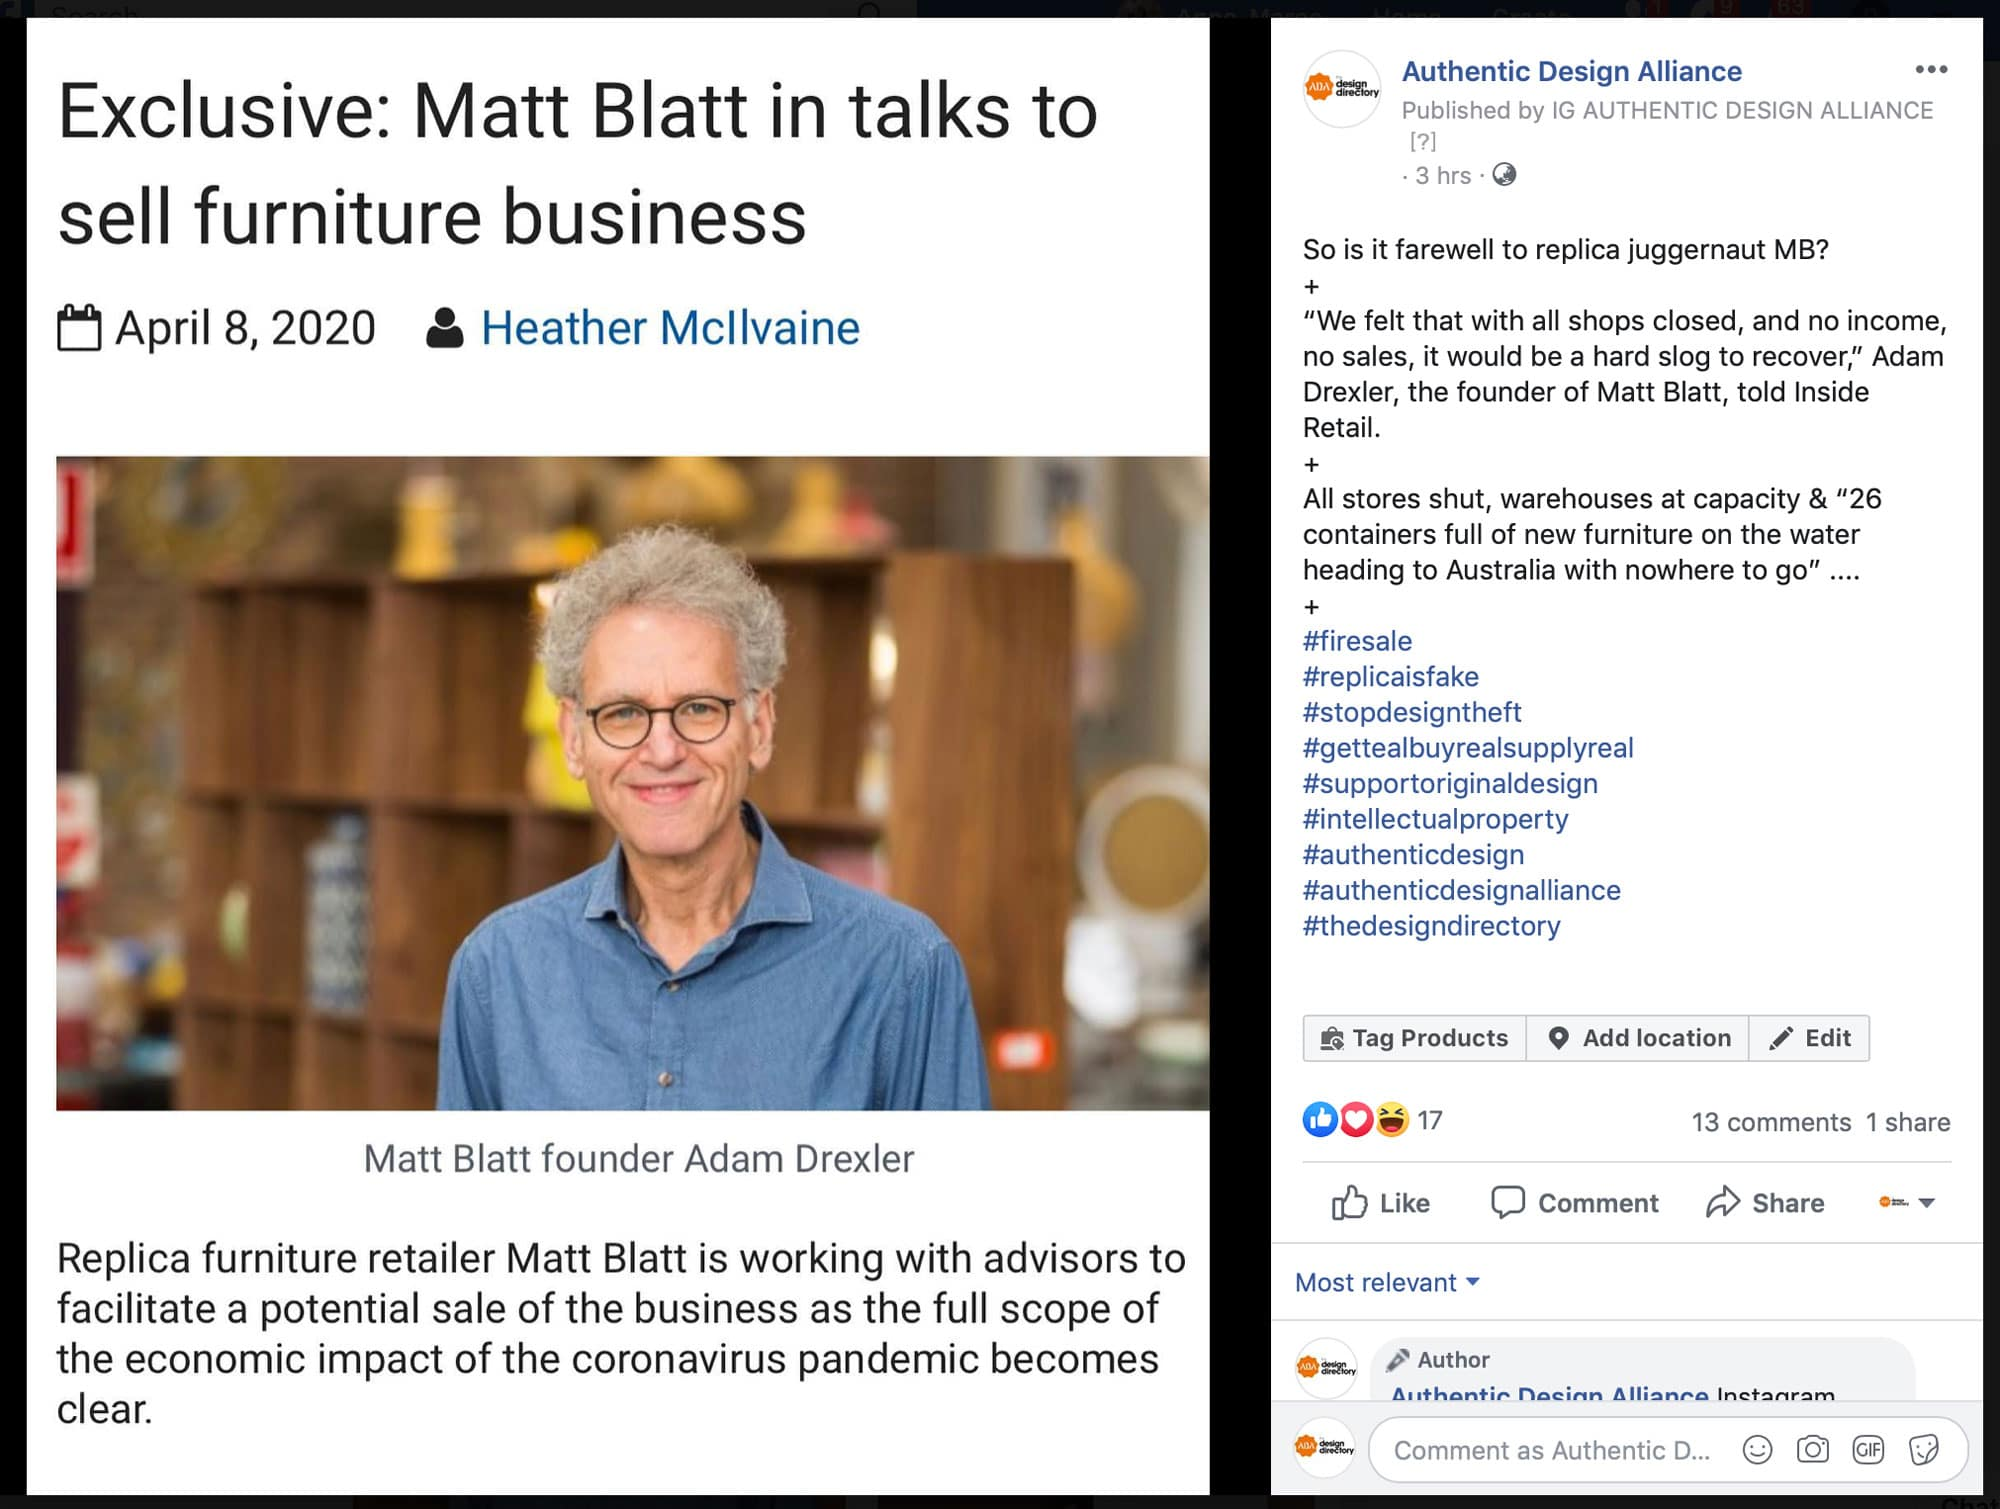 Inside Retail report of Matt Blatt sale